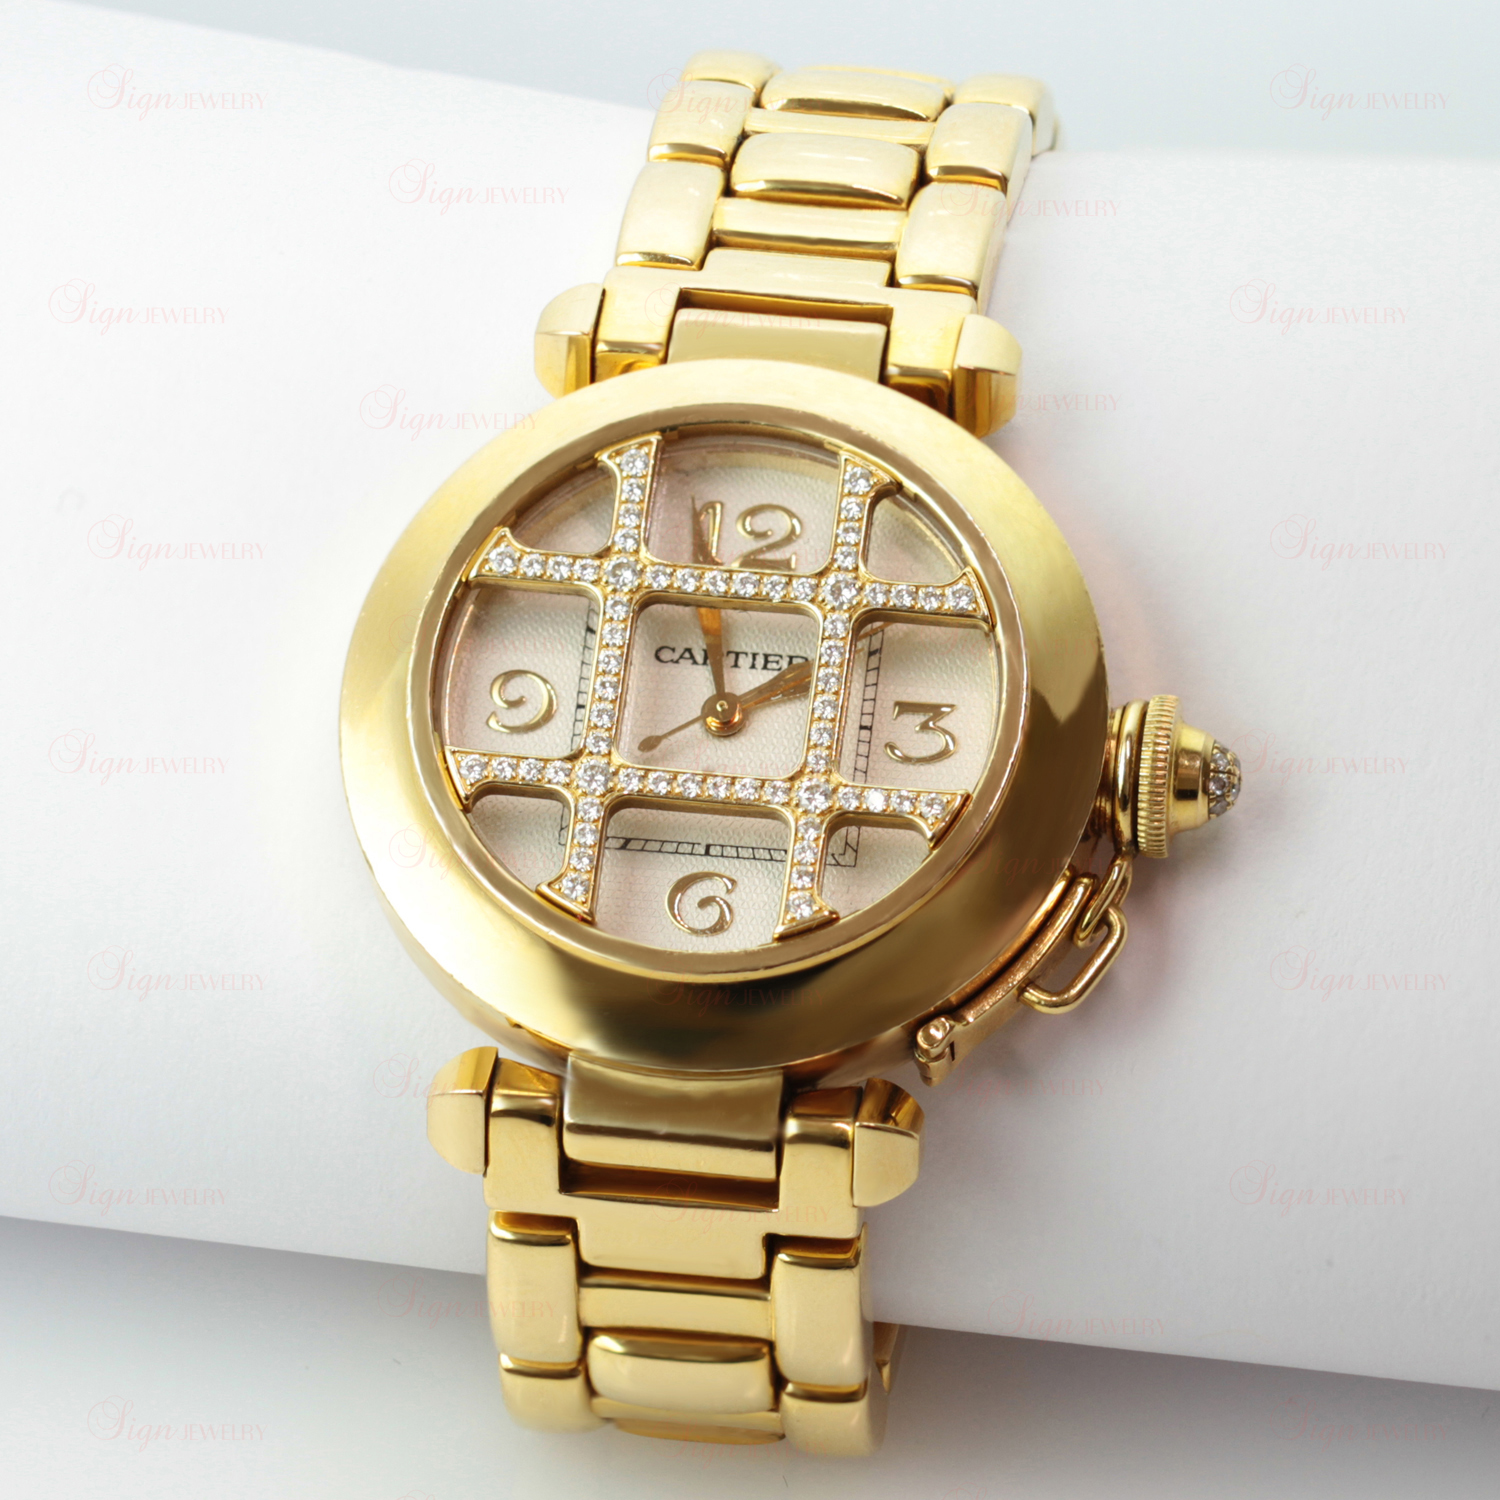 9c6c01c46e5fb CARTIER Pasha 18k Yellow Gold Swiss Quartz Diamond Grid ...